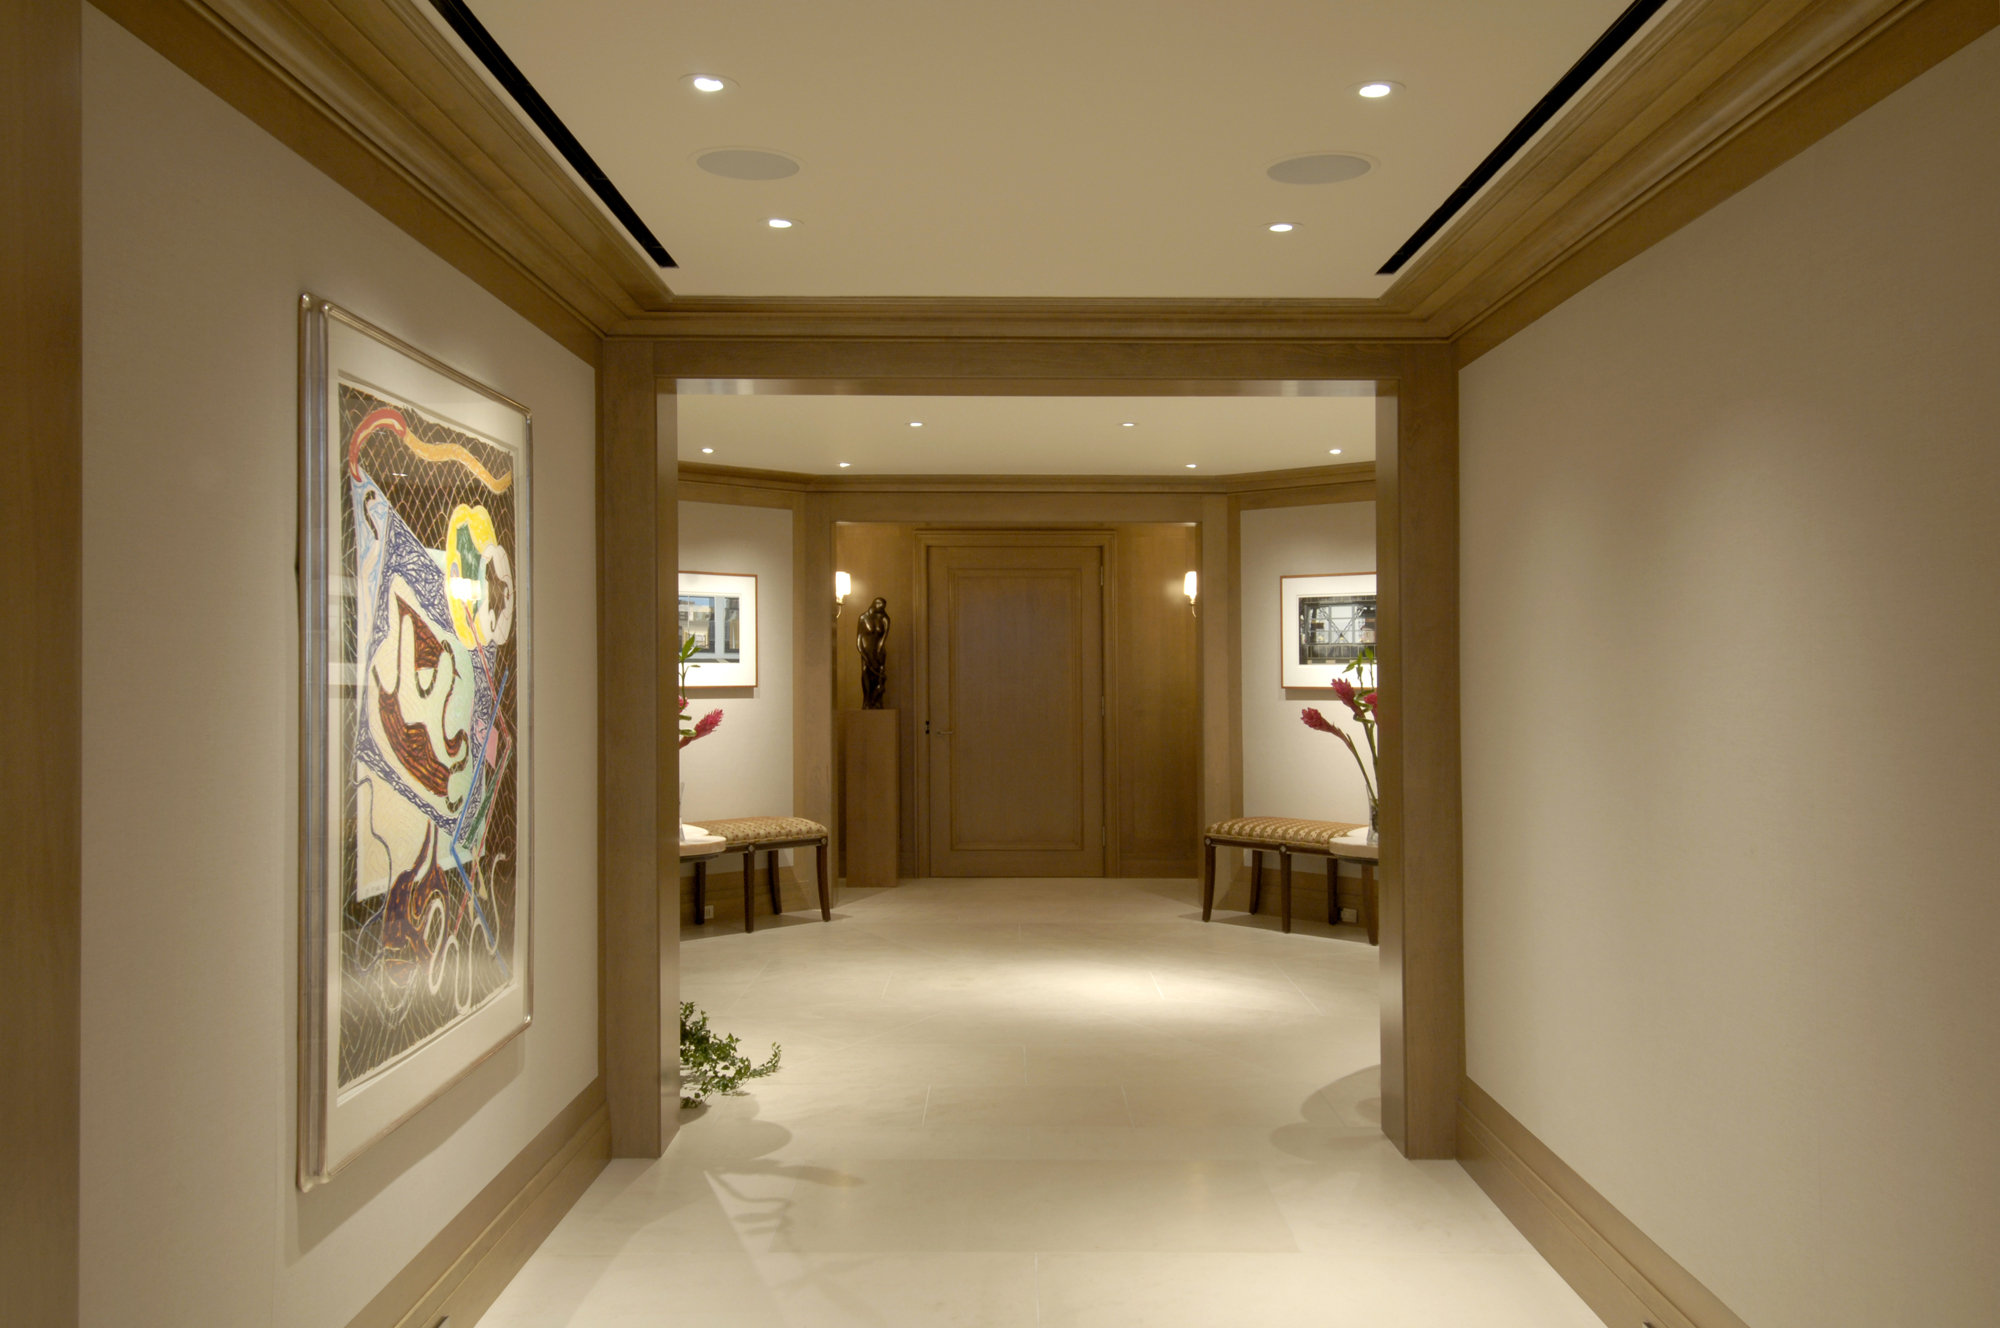 Foyer Hallway Schedule : Award winning condominium penthouse renovation in